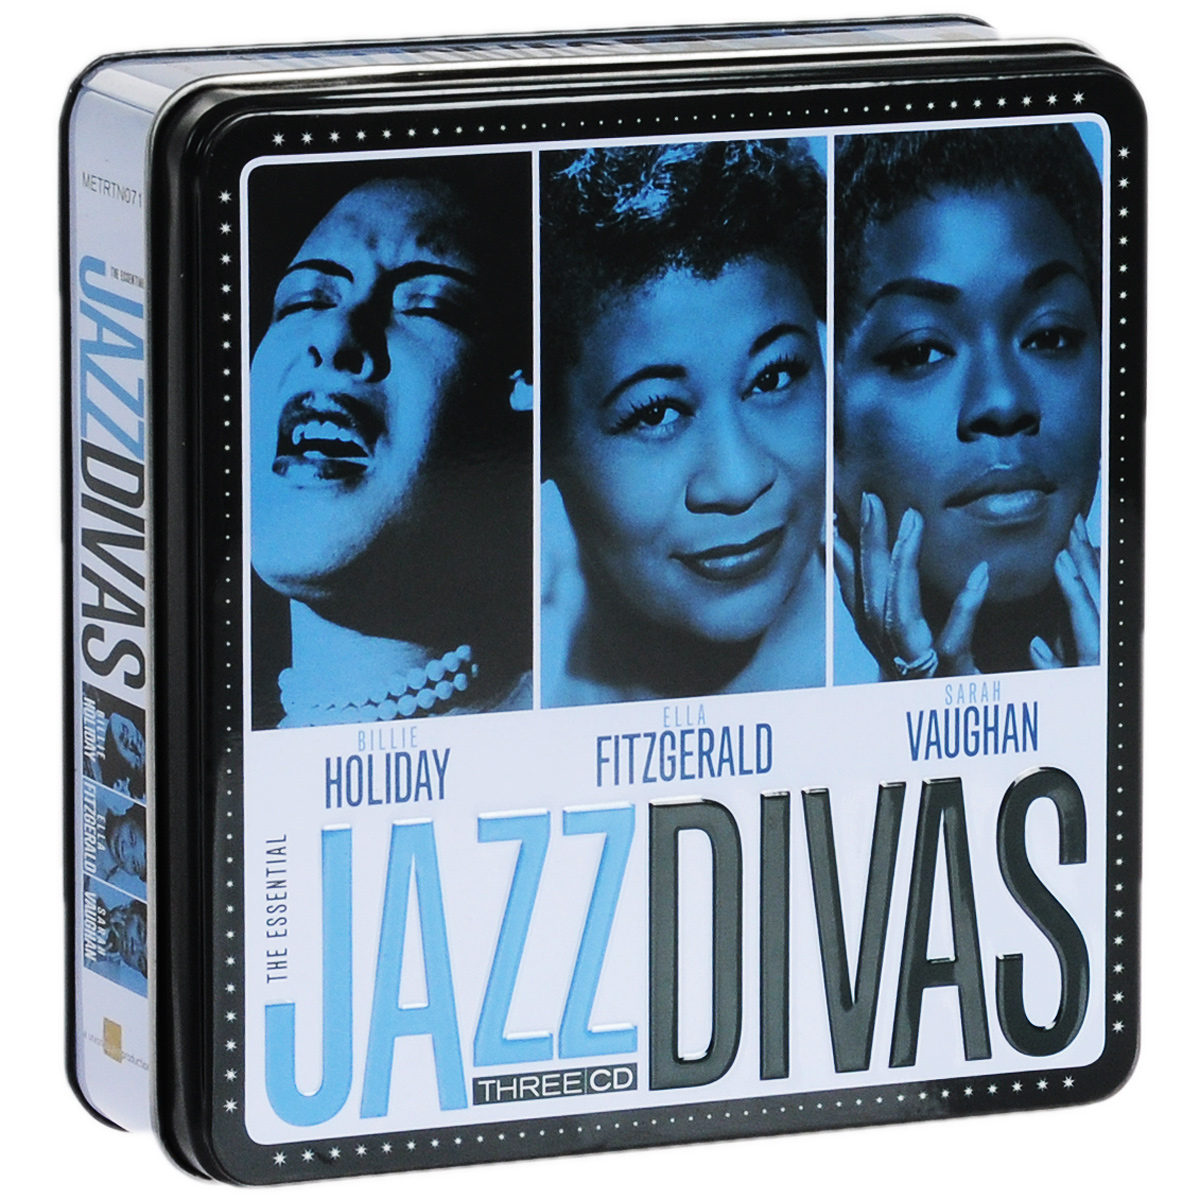 Элла Фитцжеральд,Билли Холидей,Сара Воэн Billie Holiday, Ella Fitzgerald, Sarah Vaughan. The Essential Jazz Divas (3CD) элла фитцжеральд the count basie orchestra tommy flanagan trio оскар питерсон ray brown duo jazz at the santa monica civic 72 3 cd